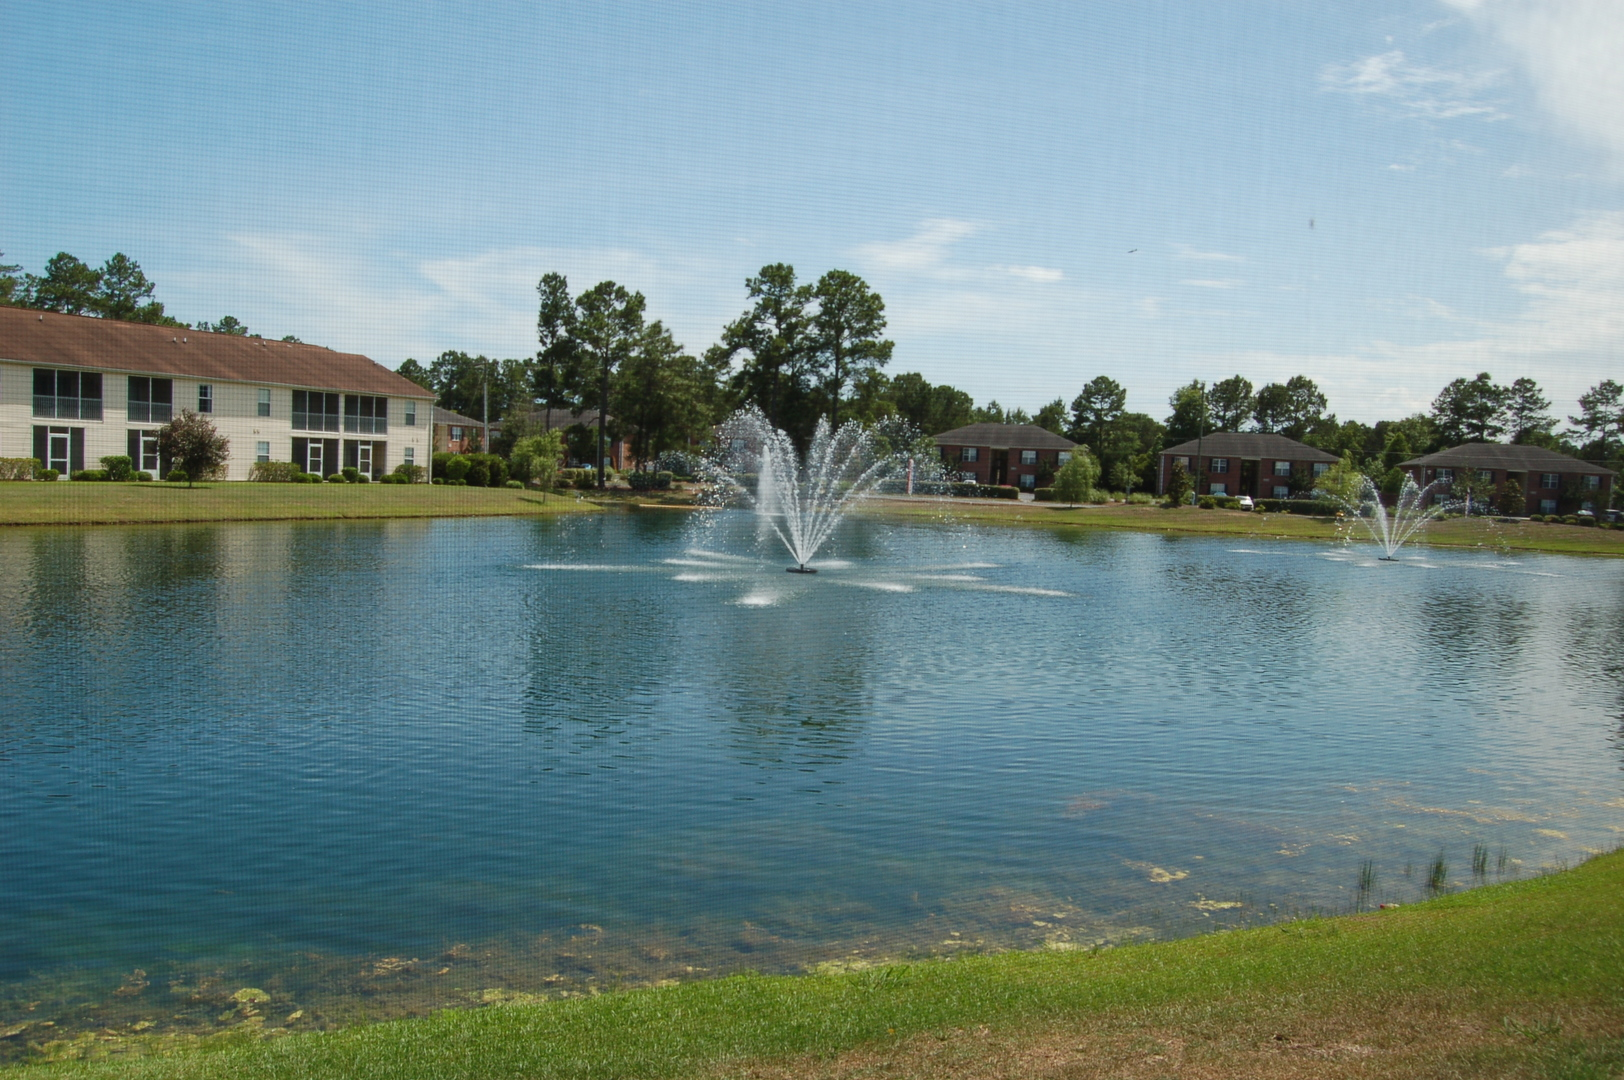 114 fountain pointe lane unit 6-103, myrtle beach, sc 29579